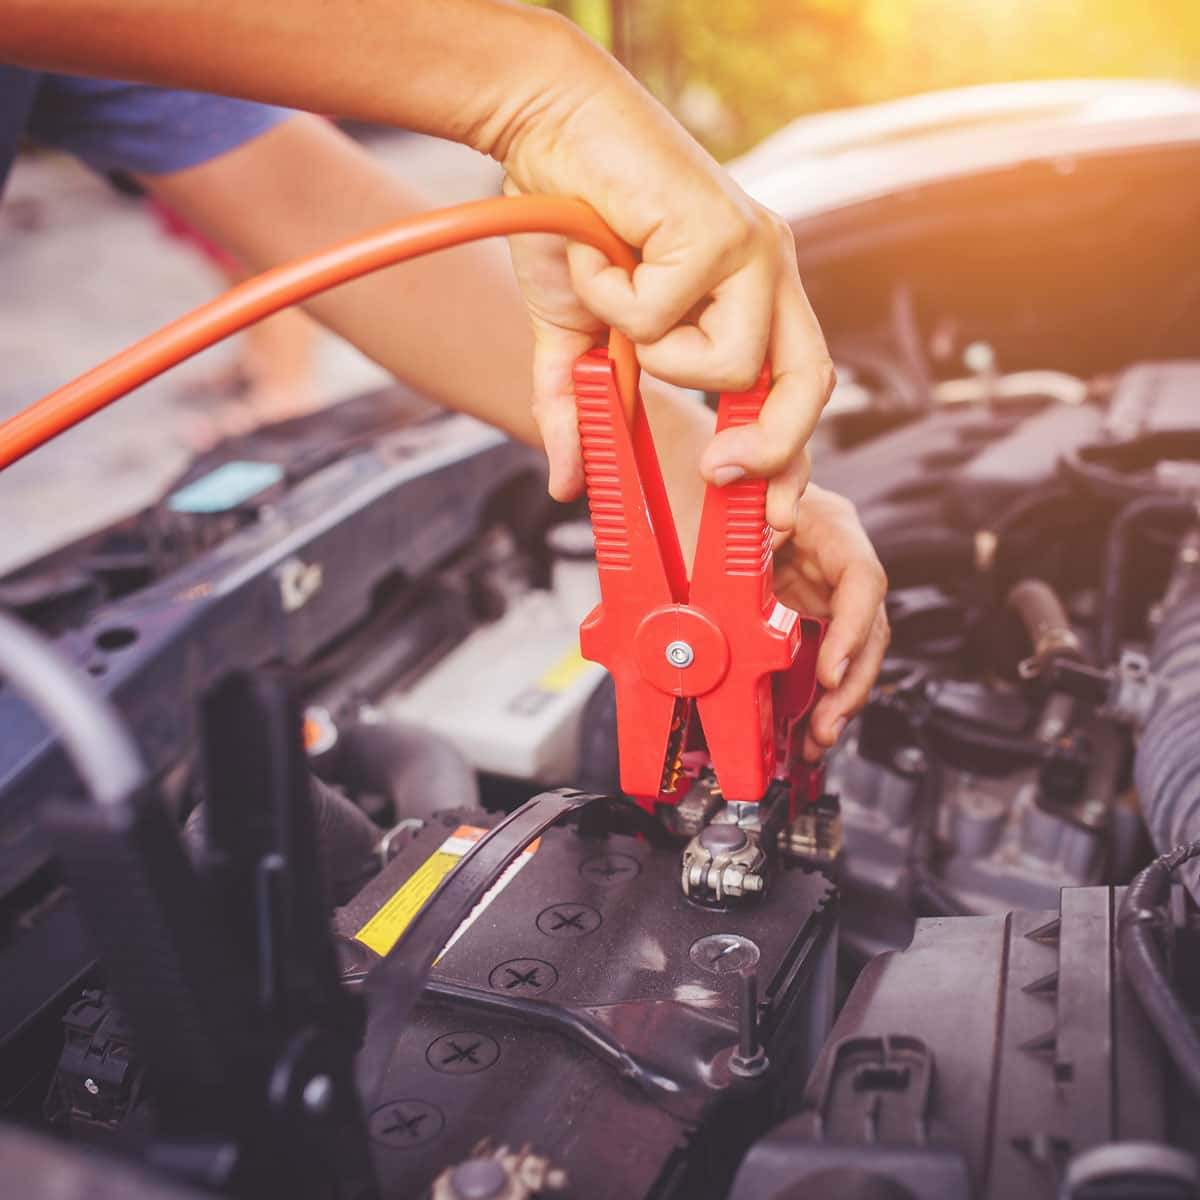 hooking up jumper cable to a car